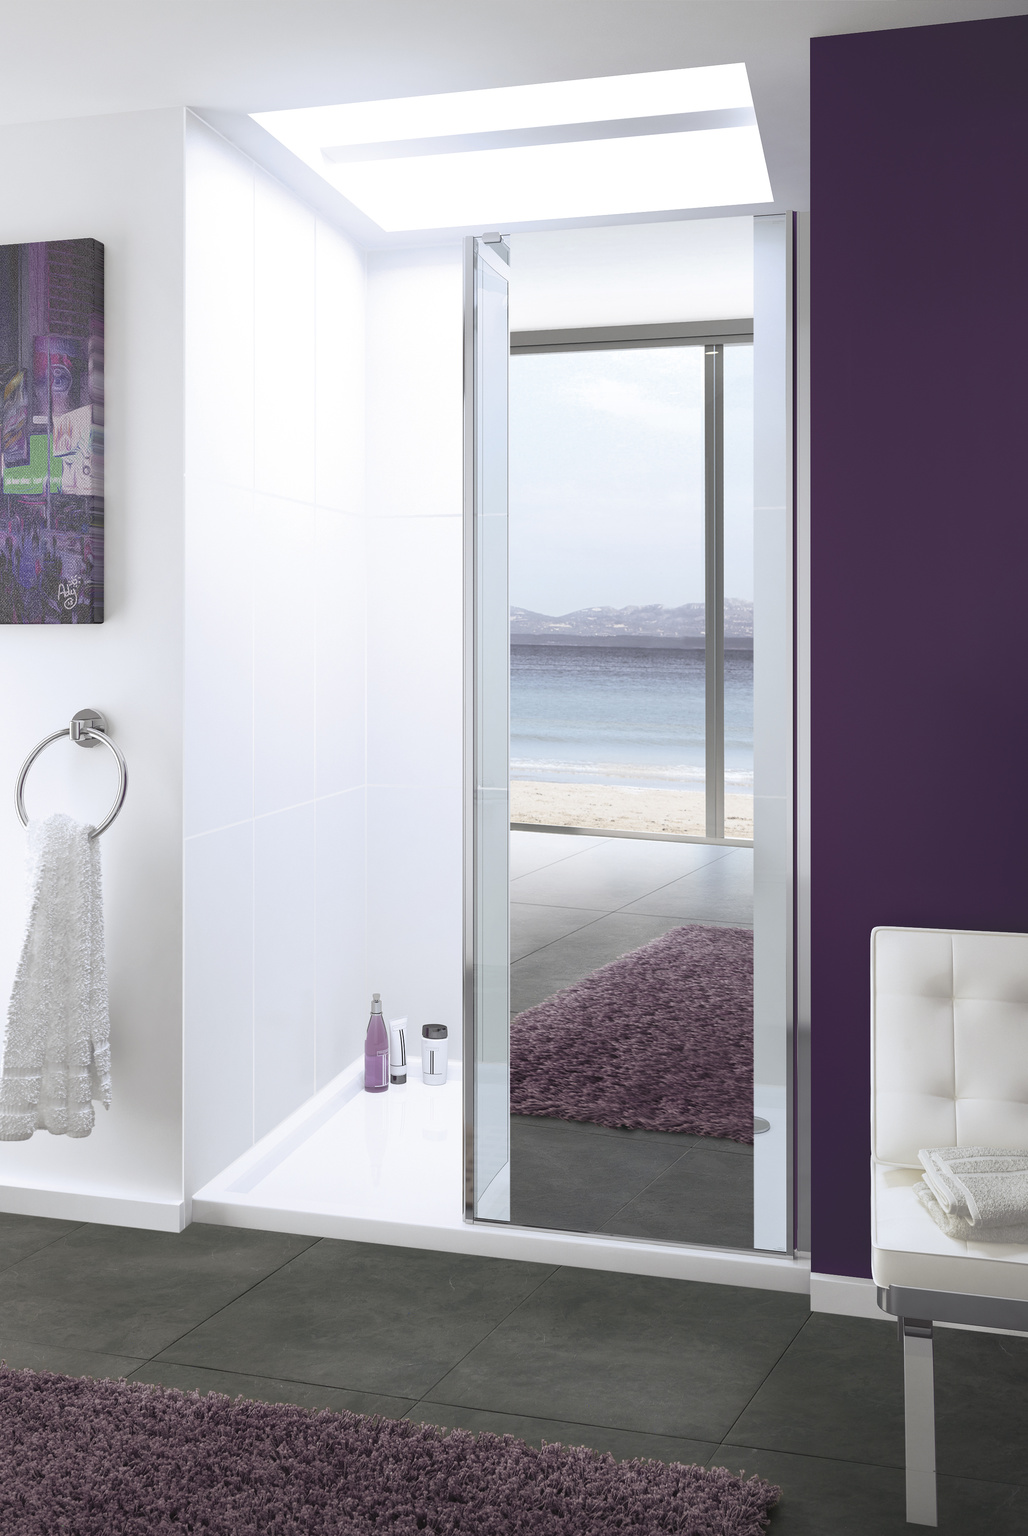 frameless Mirror: Levanzo walk-in shower enclosure